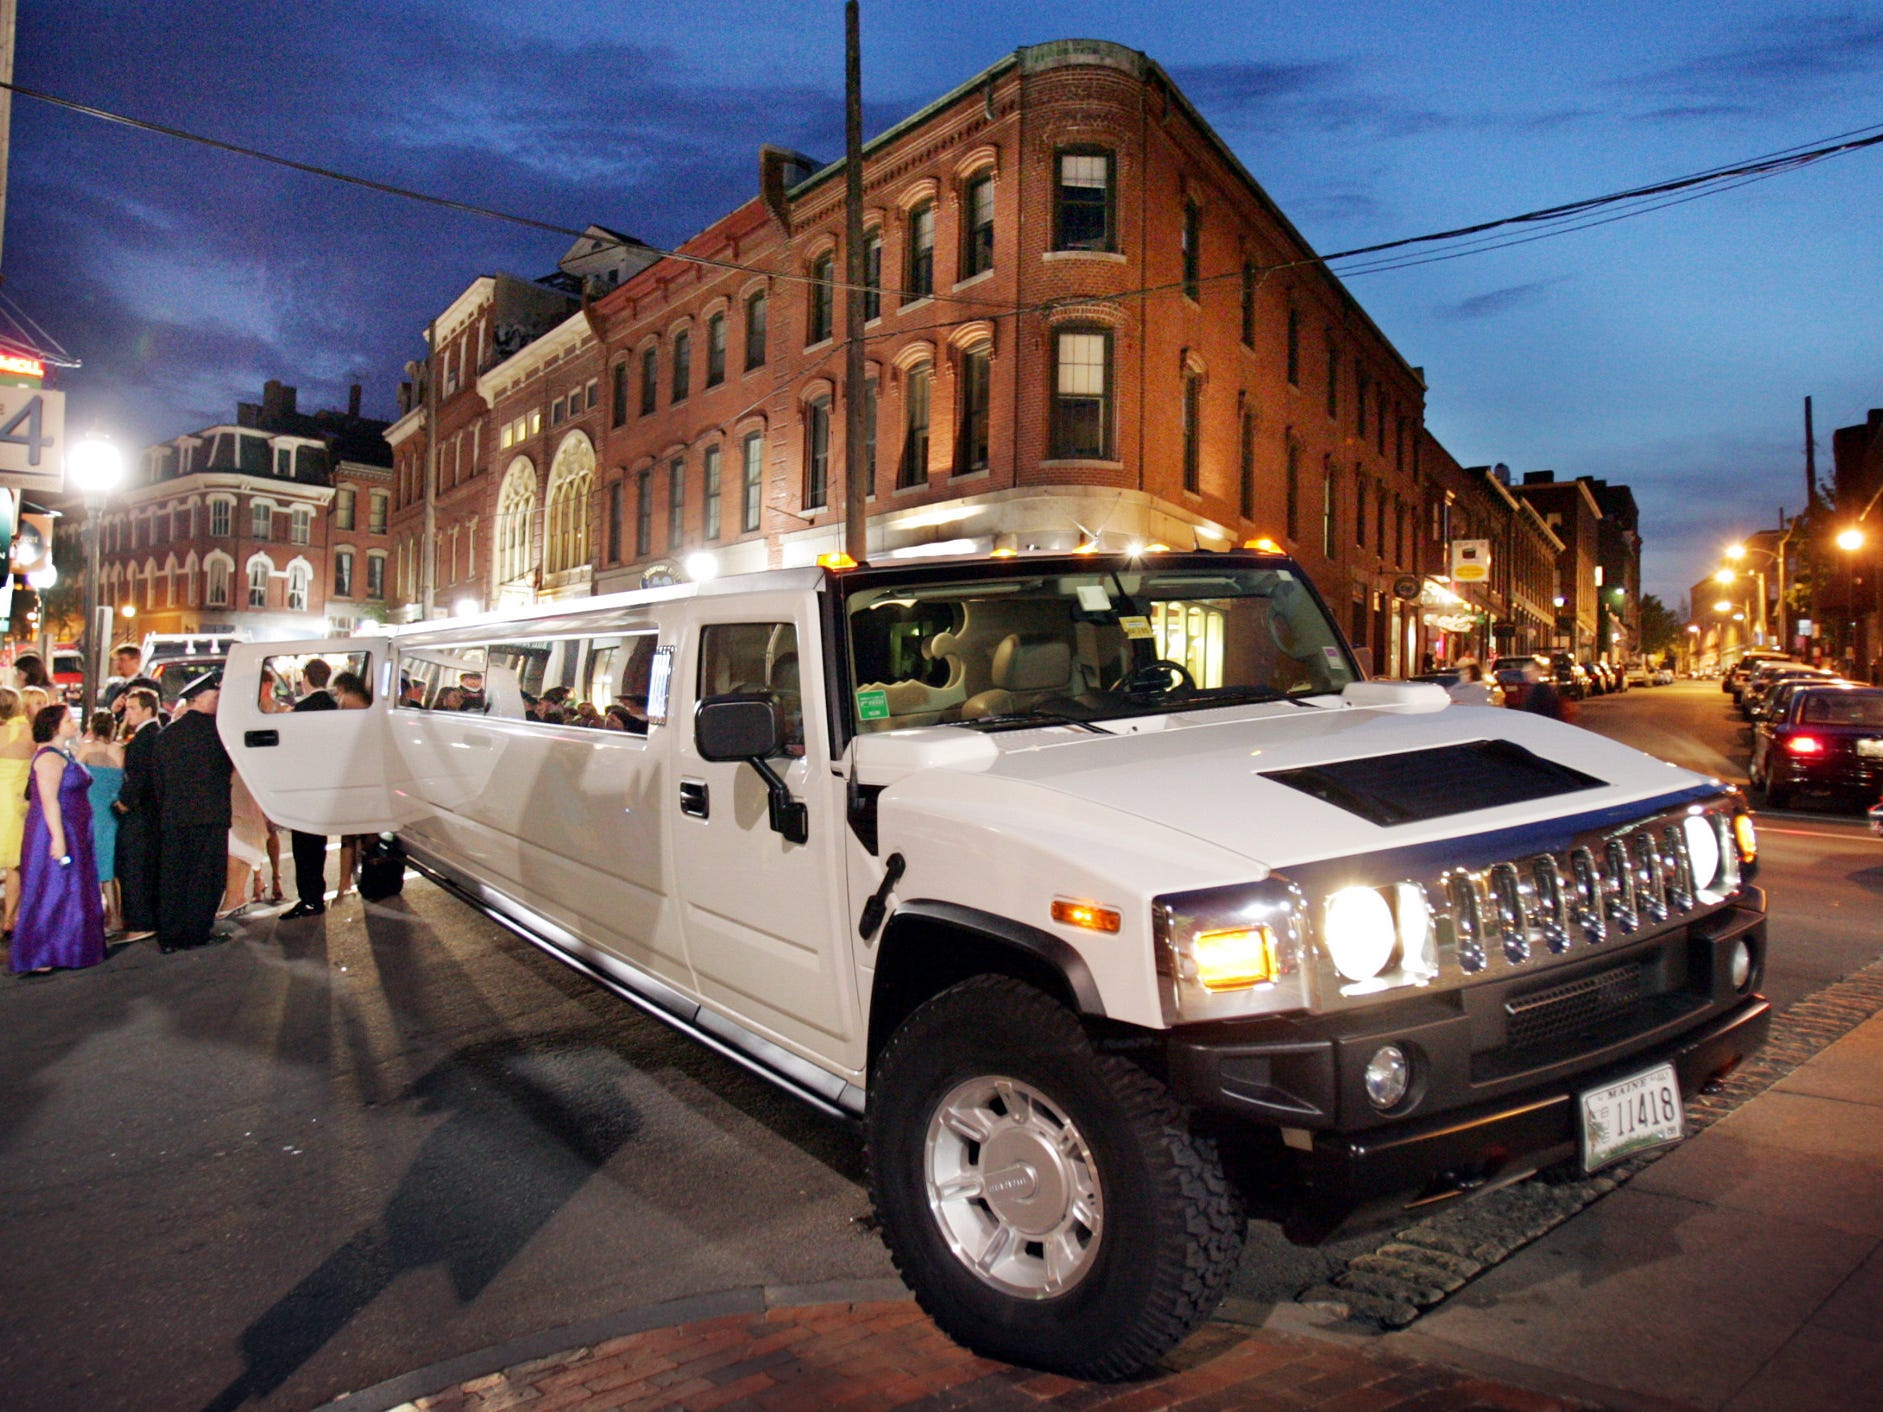 A 34-foot Hummer limo on prom night in Portland, Maine, June 4, 2005.